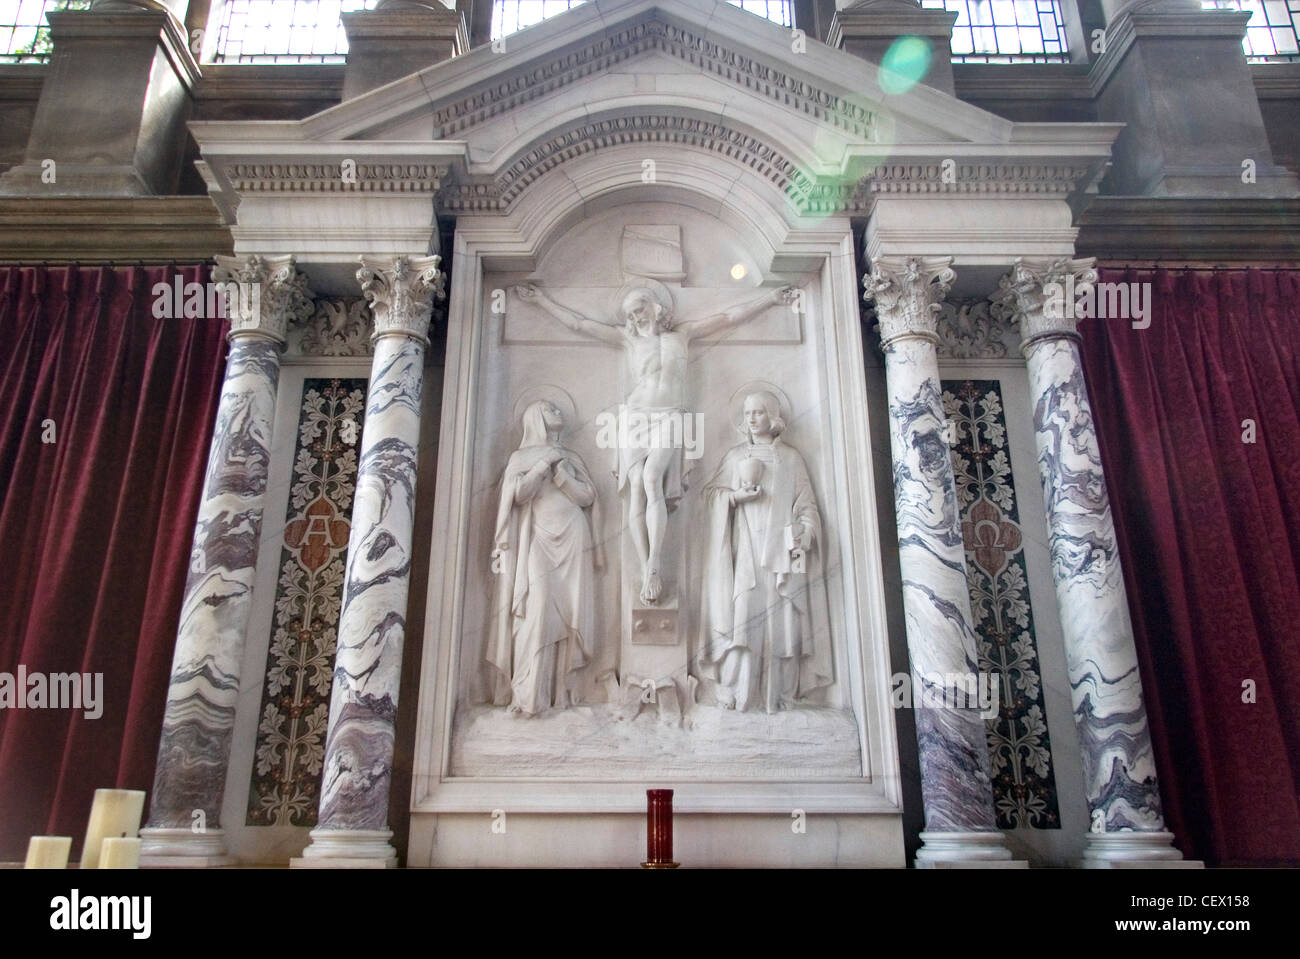 Altar piece of Hertford College Chapel, Oxford - Stock Image